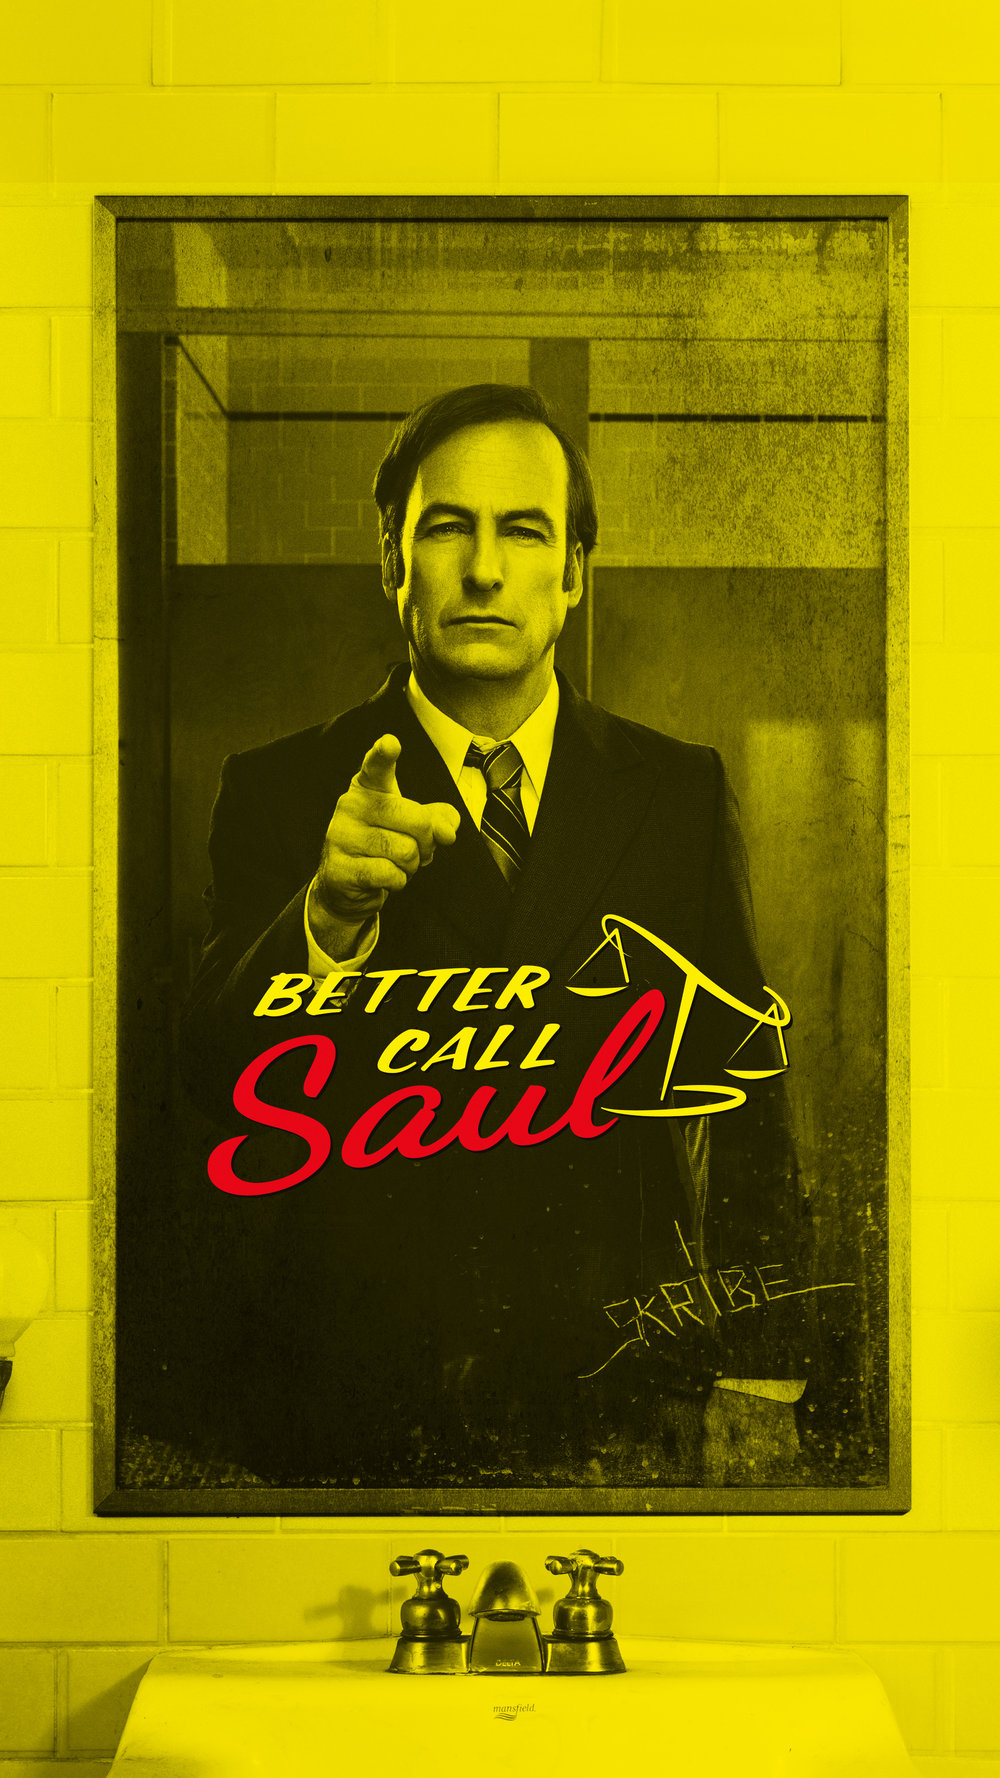 BetterCallSaul_Zedge_2250x4000_11.jpg